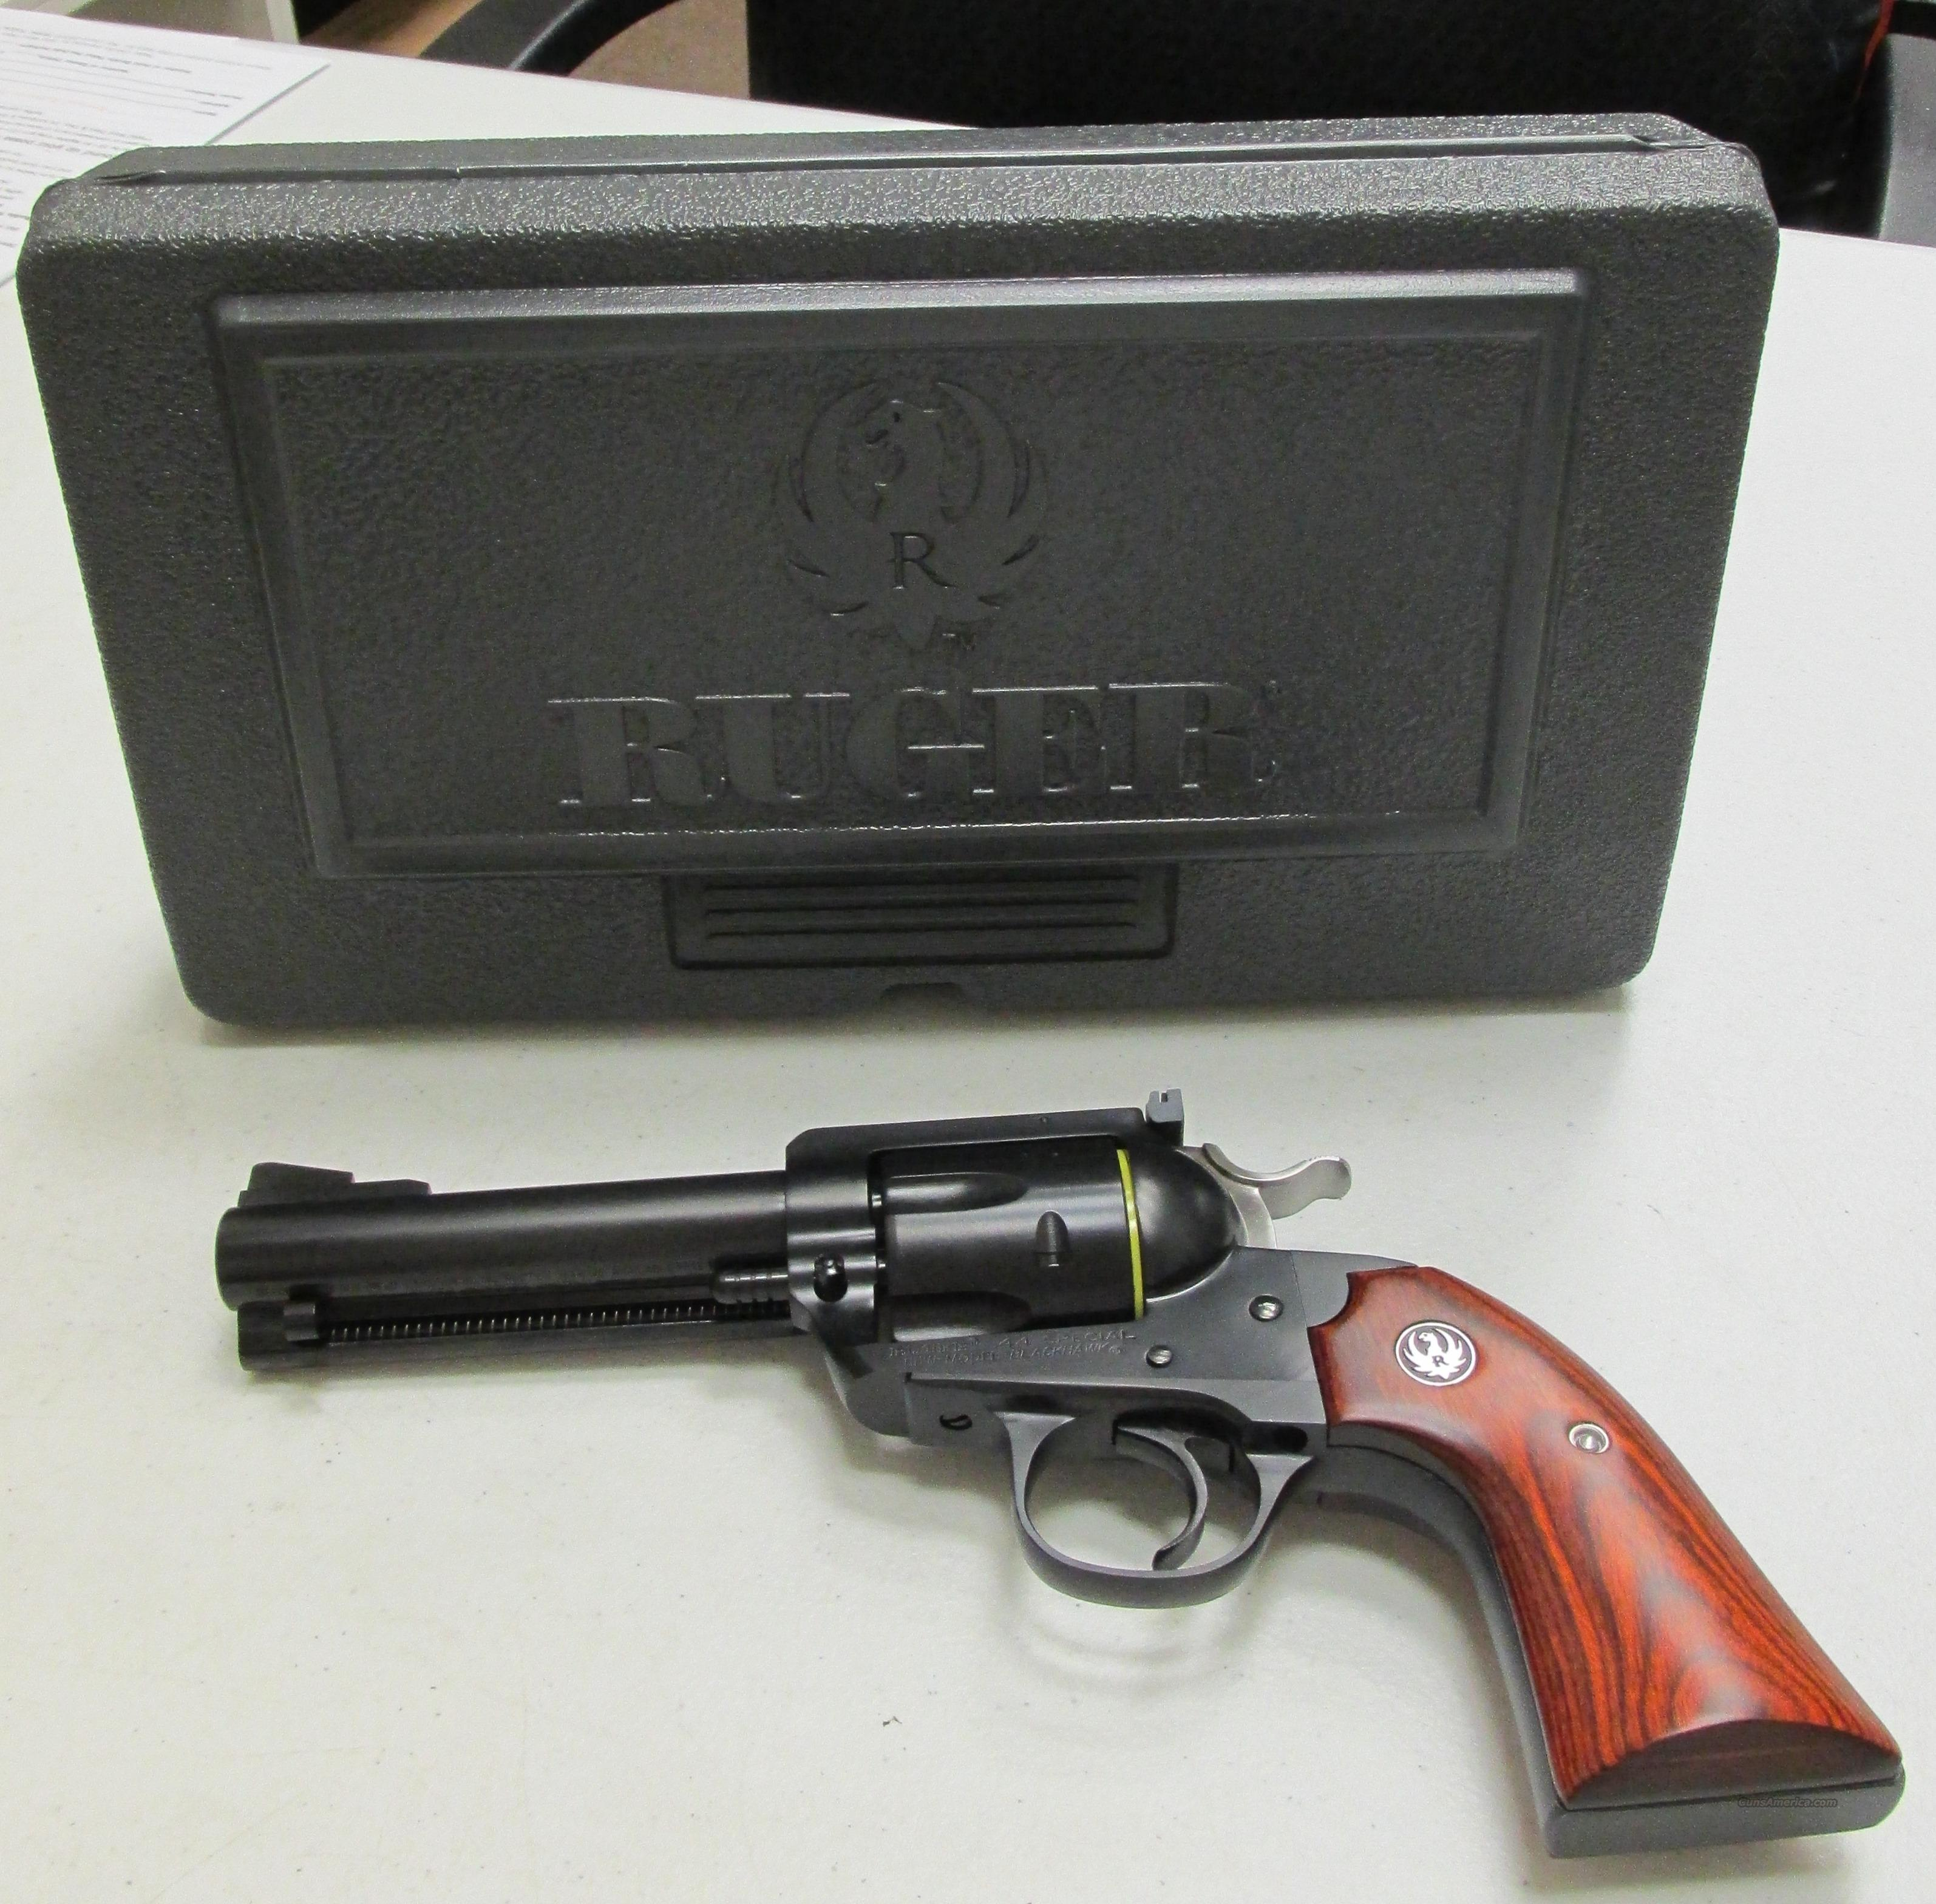 "Ruger Bisley Flattop 44SPC Exclusive #5236 4 5/8""  Guns > Pistols > Ruger Single Action Revolvers > Cowboy Action"